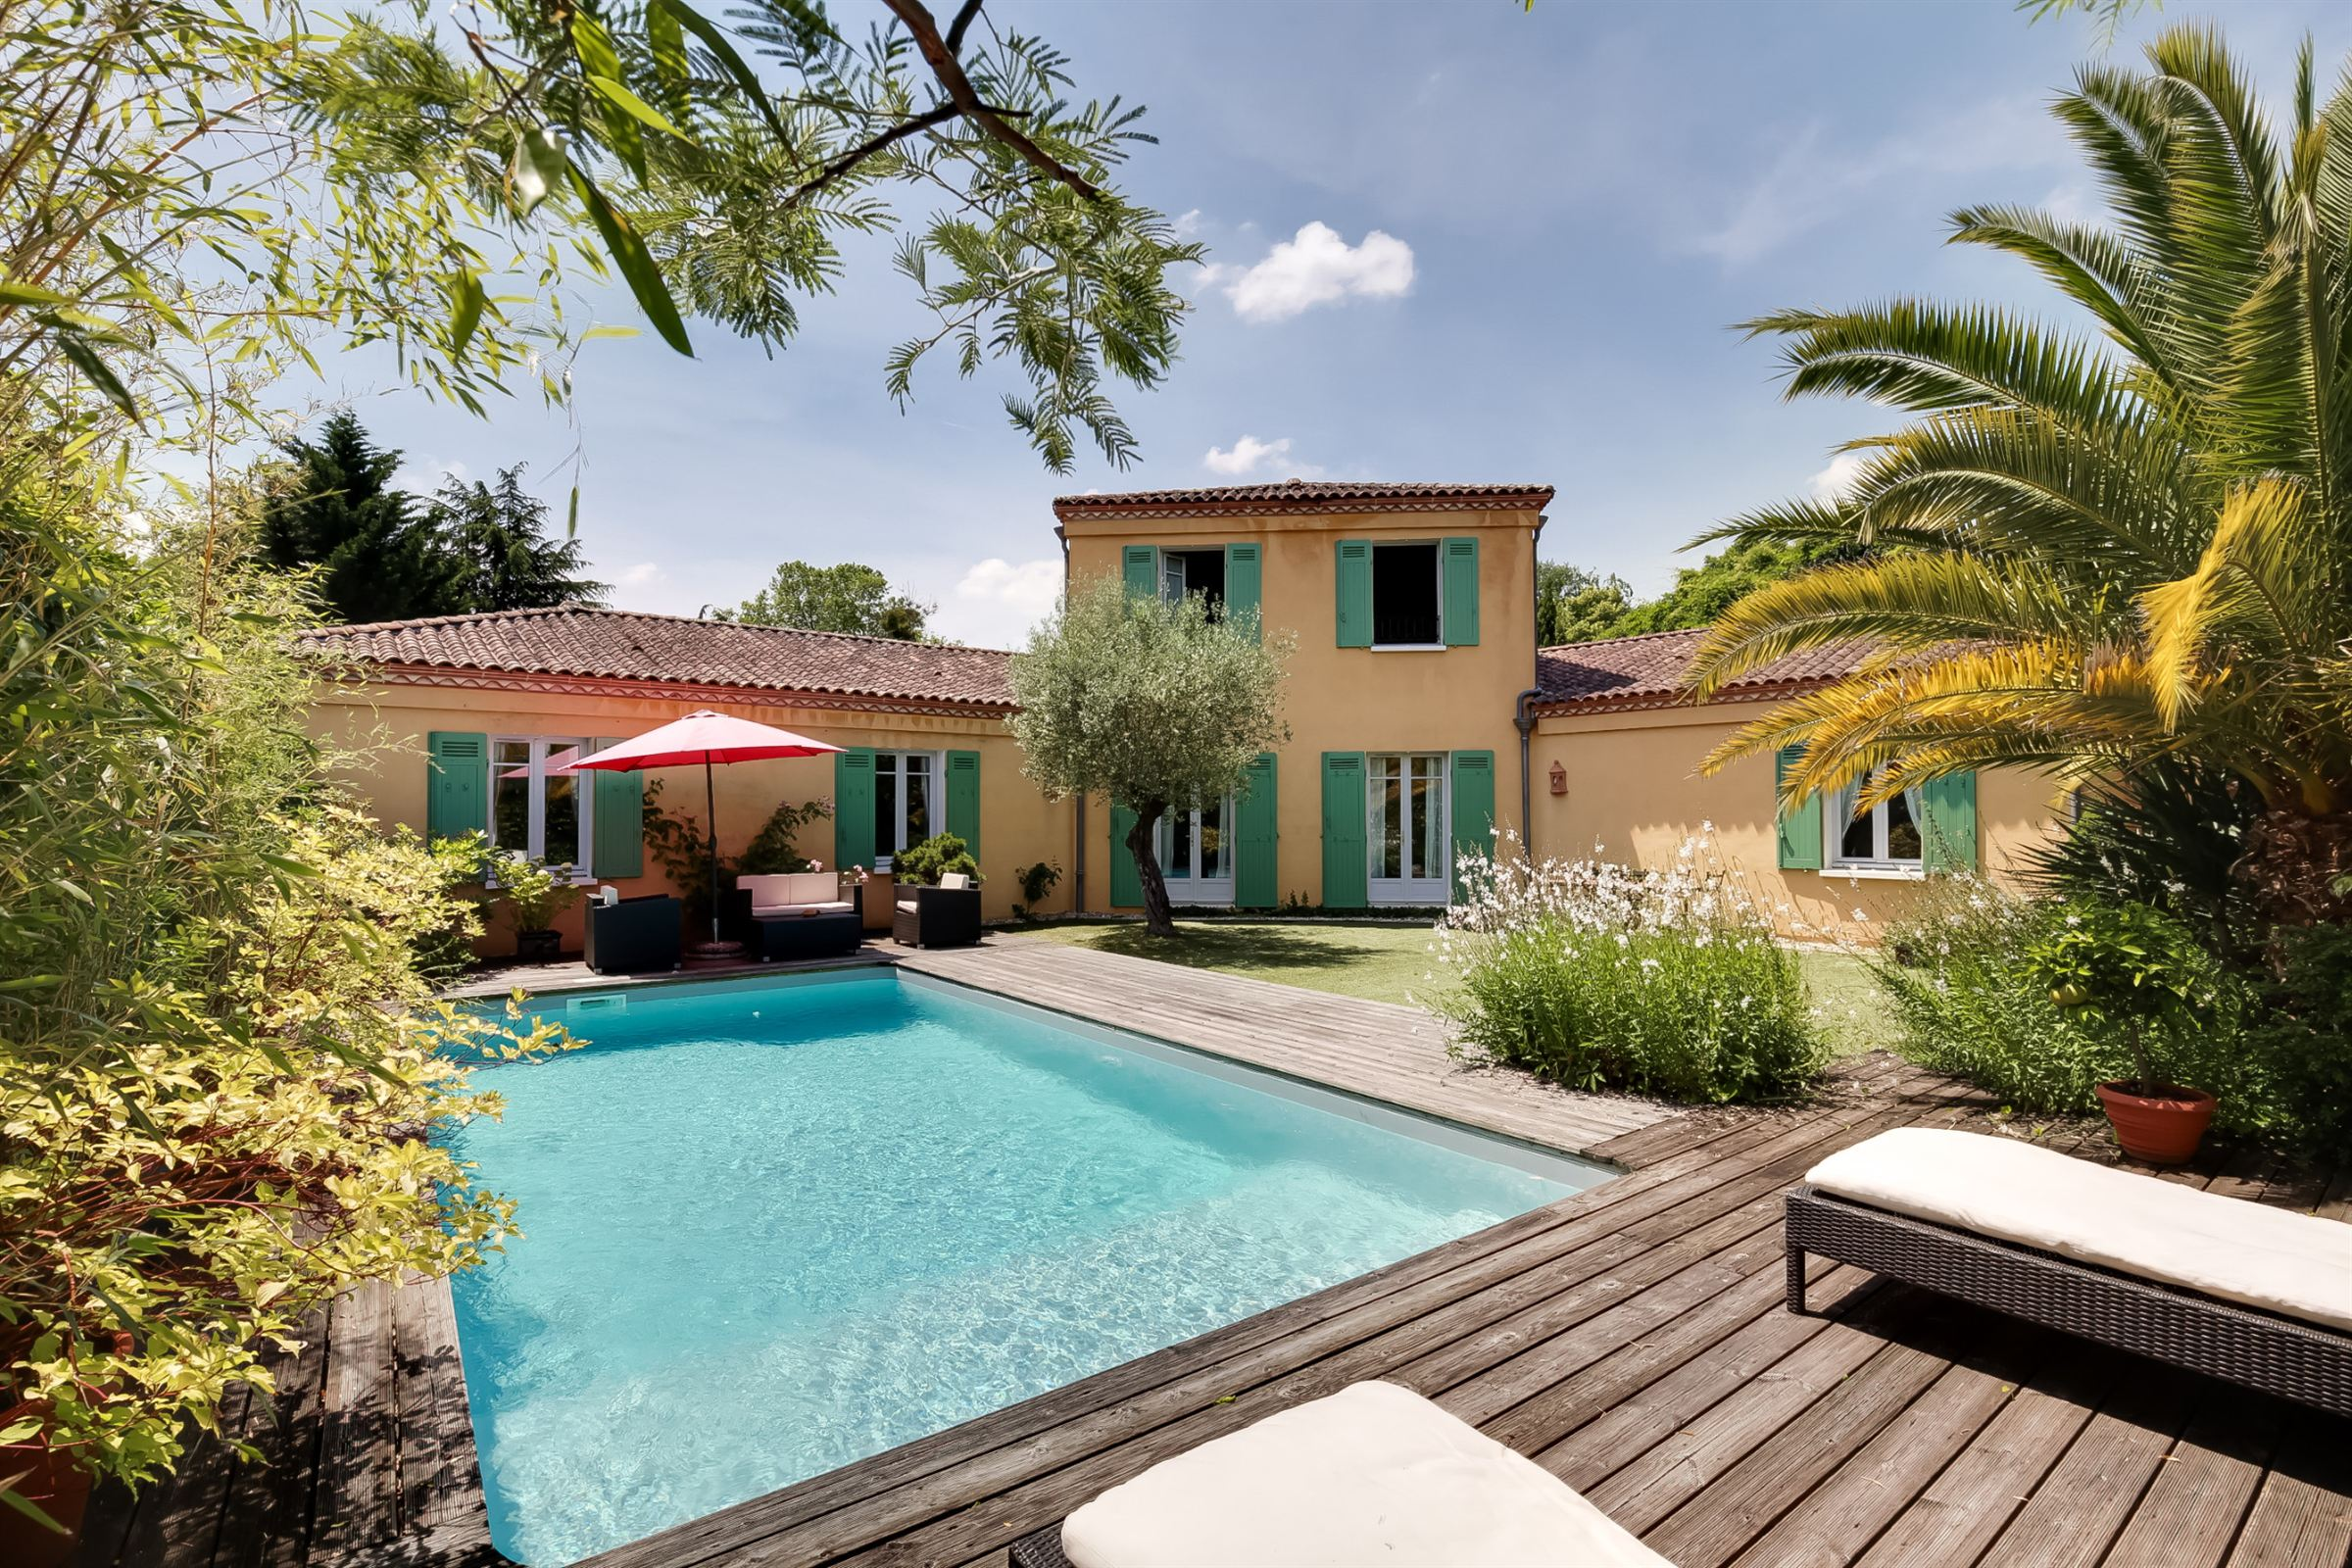 Single Family Home for Sale at BORDEAUX – NEAR THE BORDELAIS GOLF COURSE - BEAUTIFUL HOME WITH LARGE GARDEN Bordeaux, Aquitaine, 33200 France